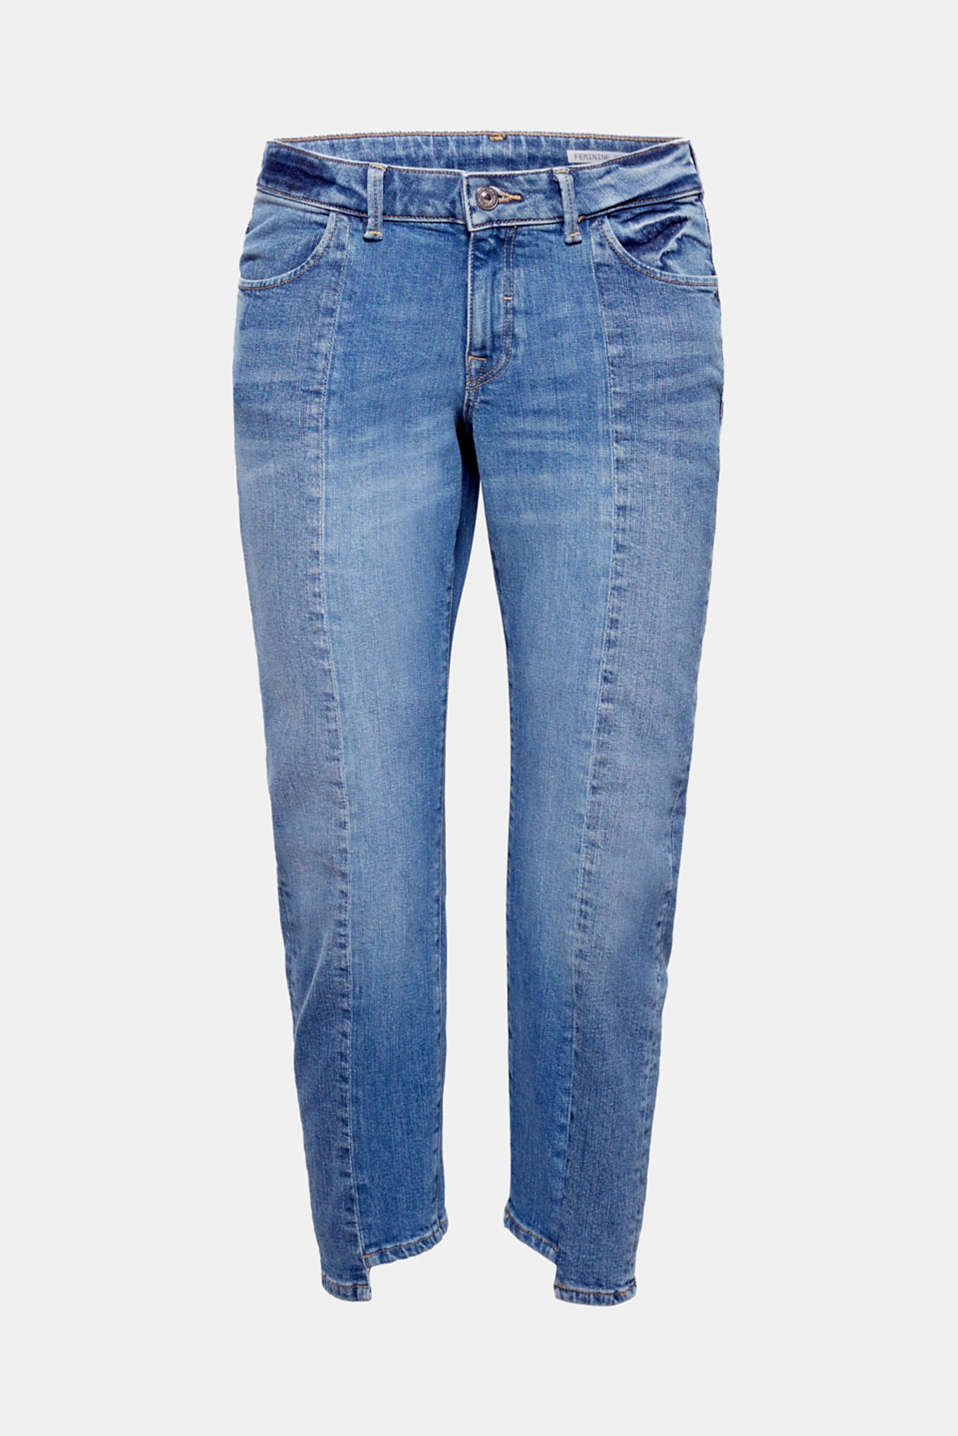 These stretch jeans with high-low hems and zips throw the spotlight on pretty ankles!